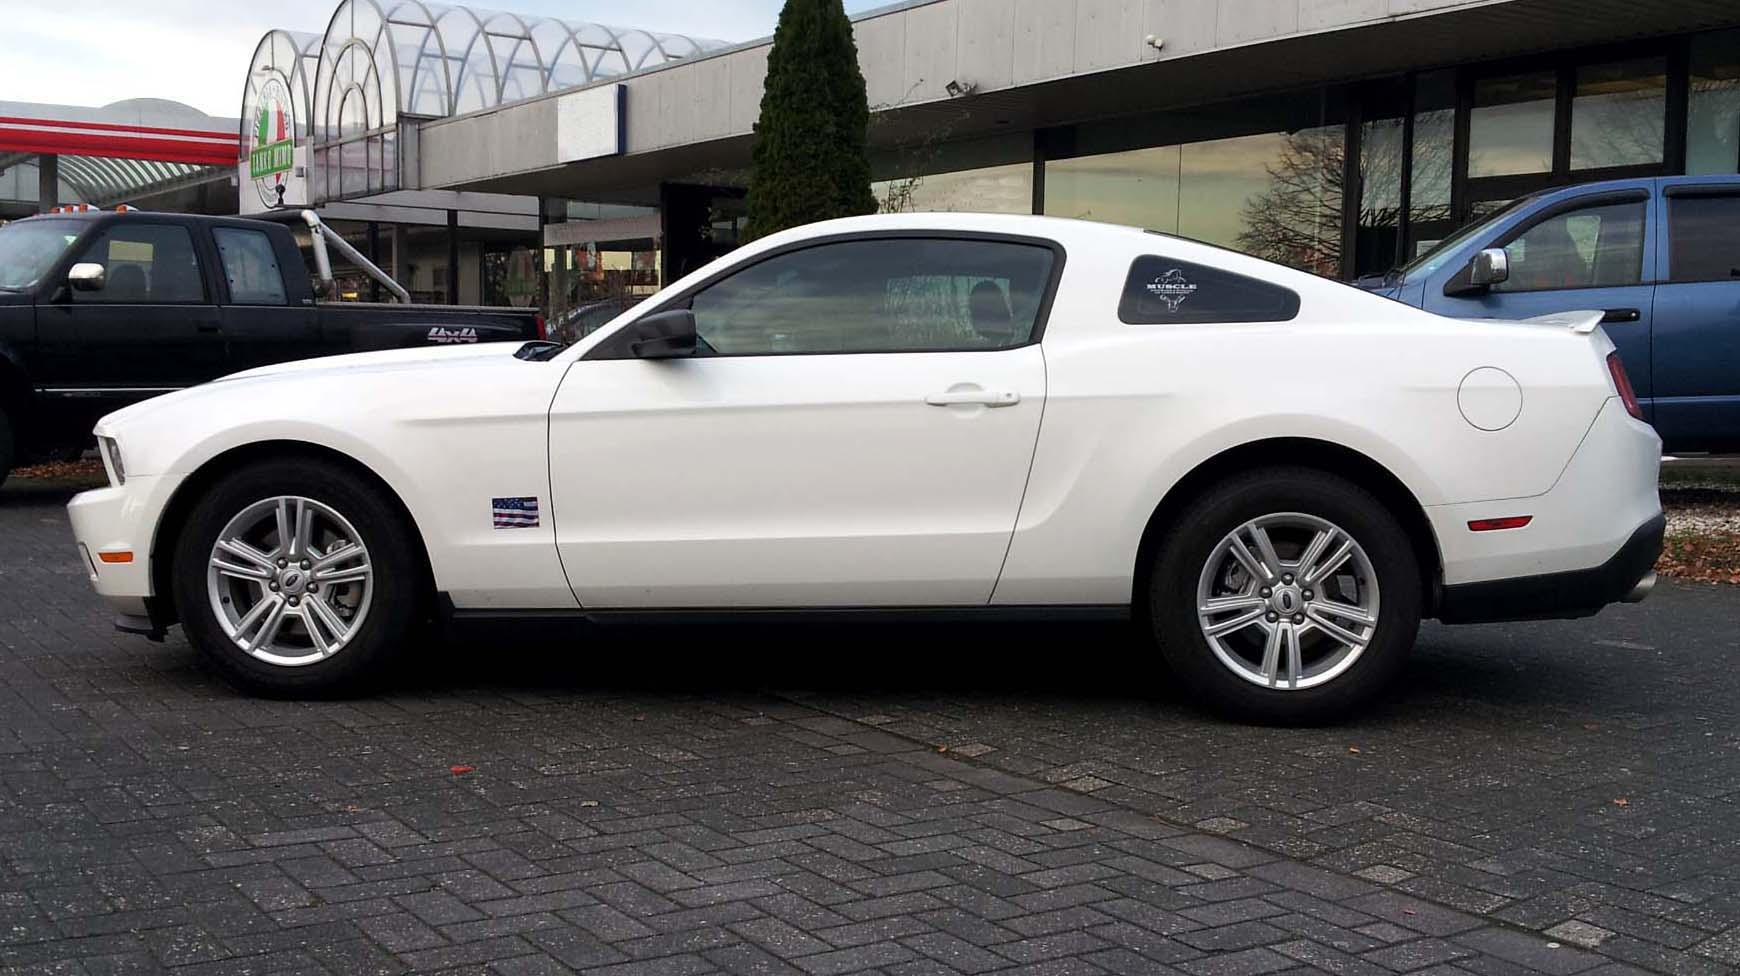 2011 60 Ford Mustang 305 Bhp 3 7 Litre V6 Automatic